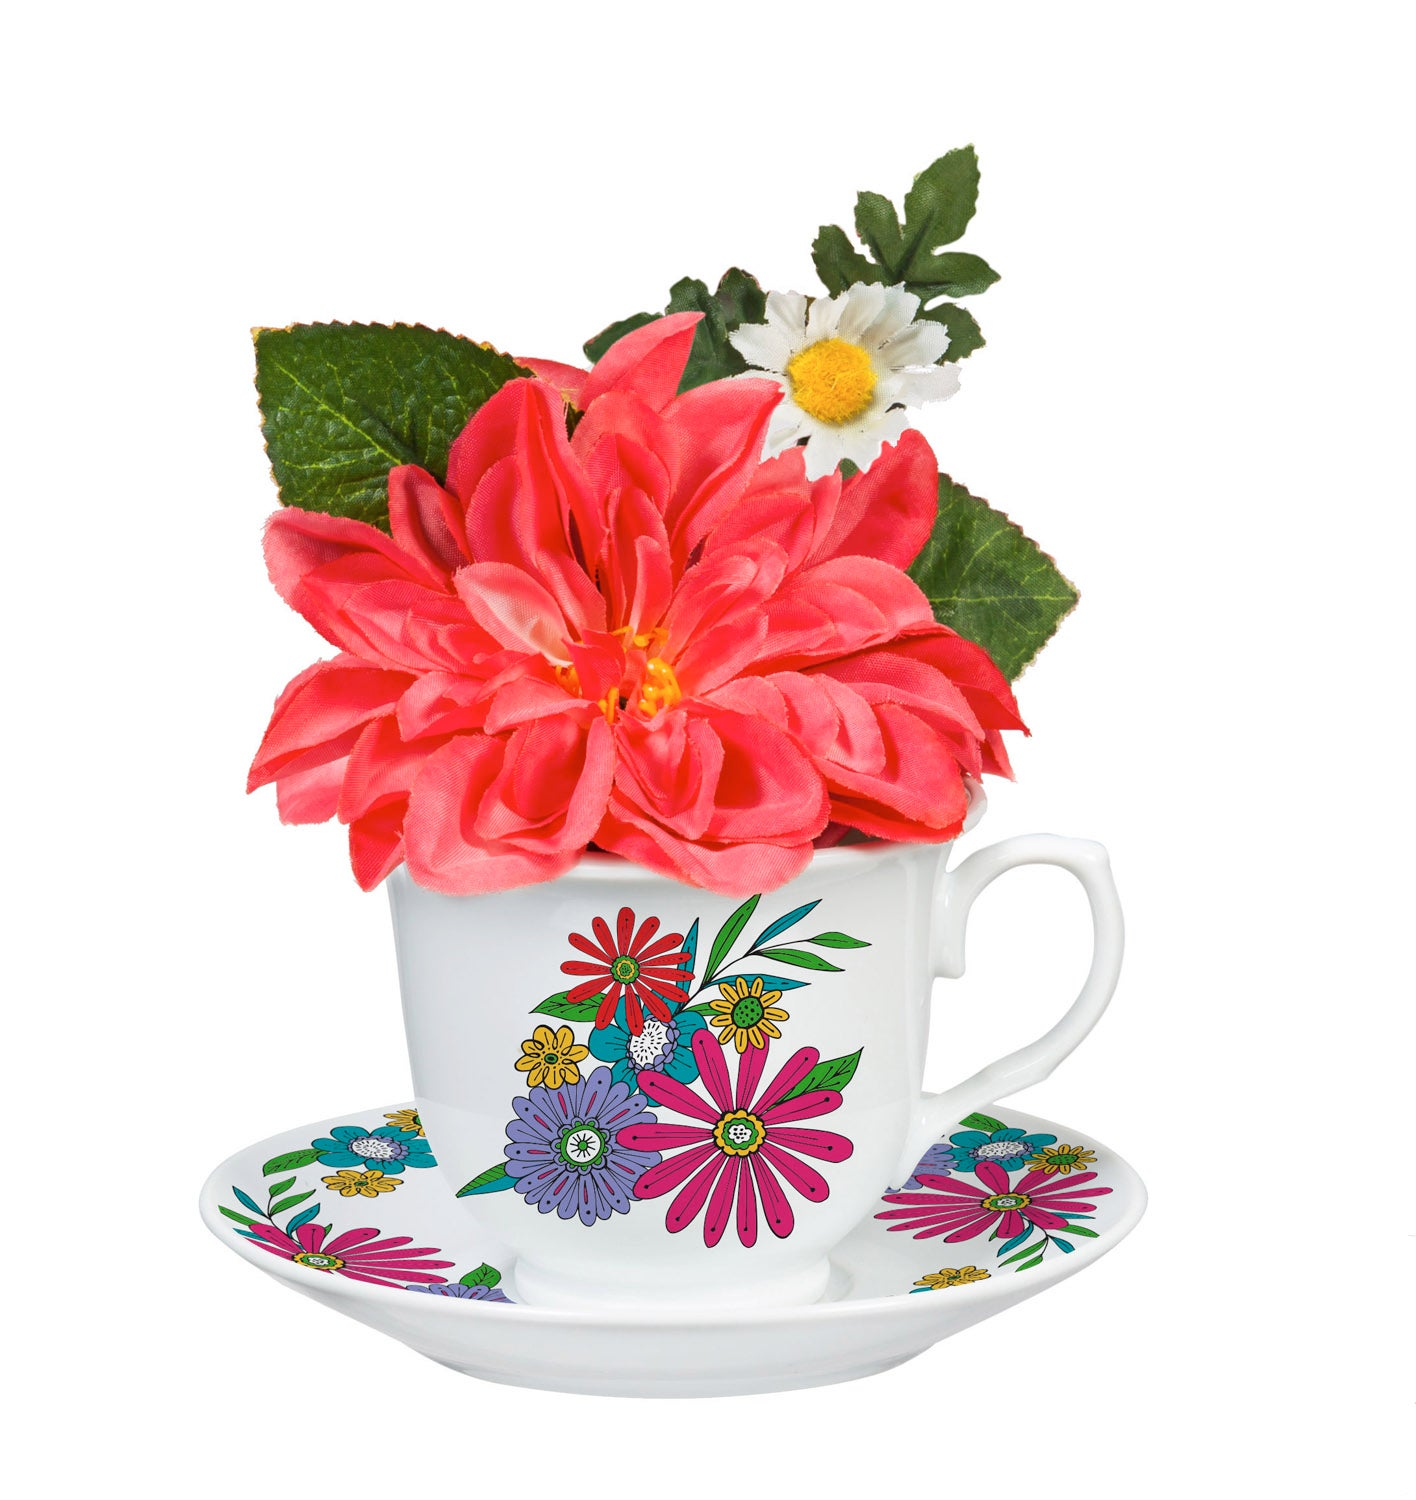 Coral Charm Peony in Tea Cup with Saucer